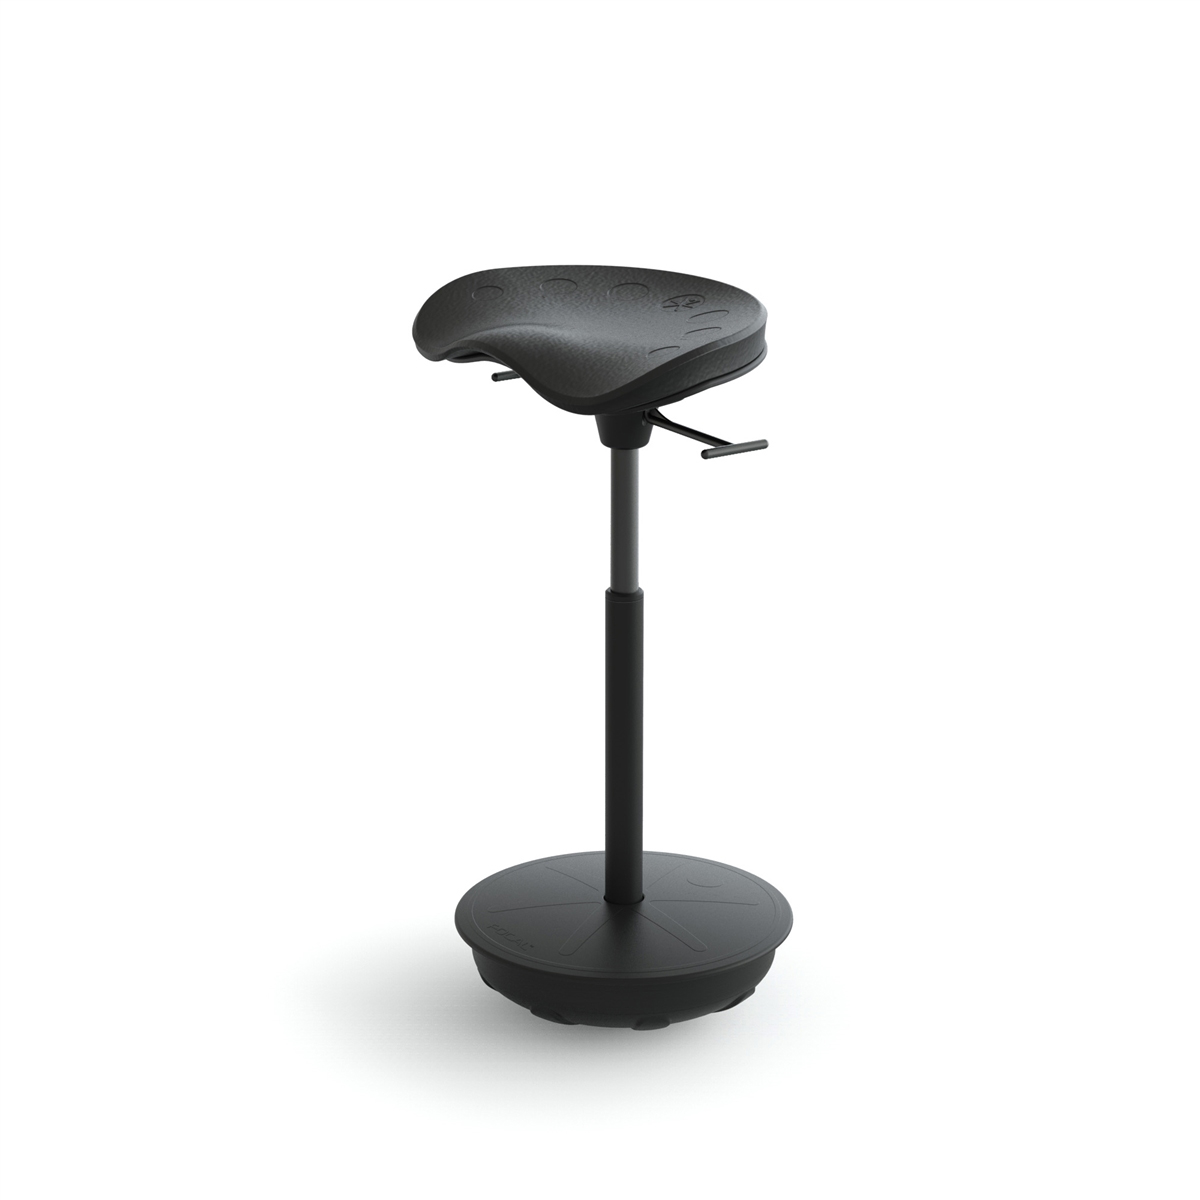 desk chair piston captain chairs for lund boats pivot seat by focal upright furniture : ergocanada - detailed specification page